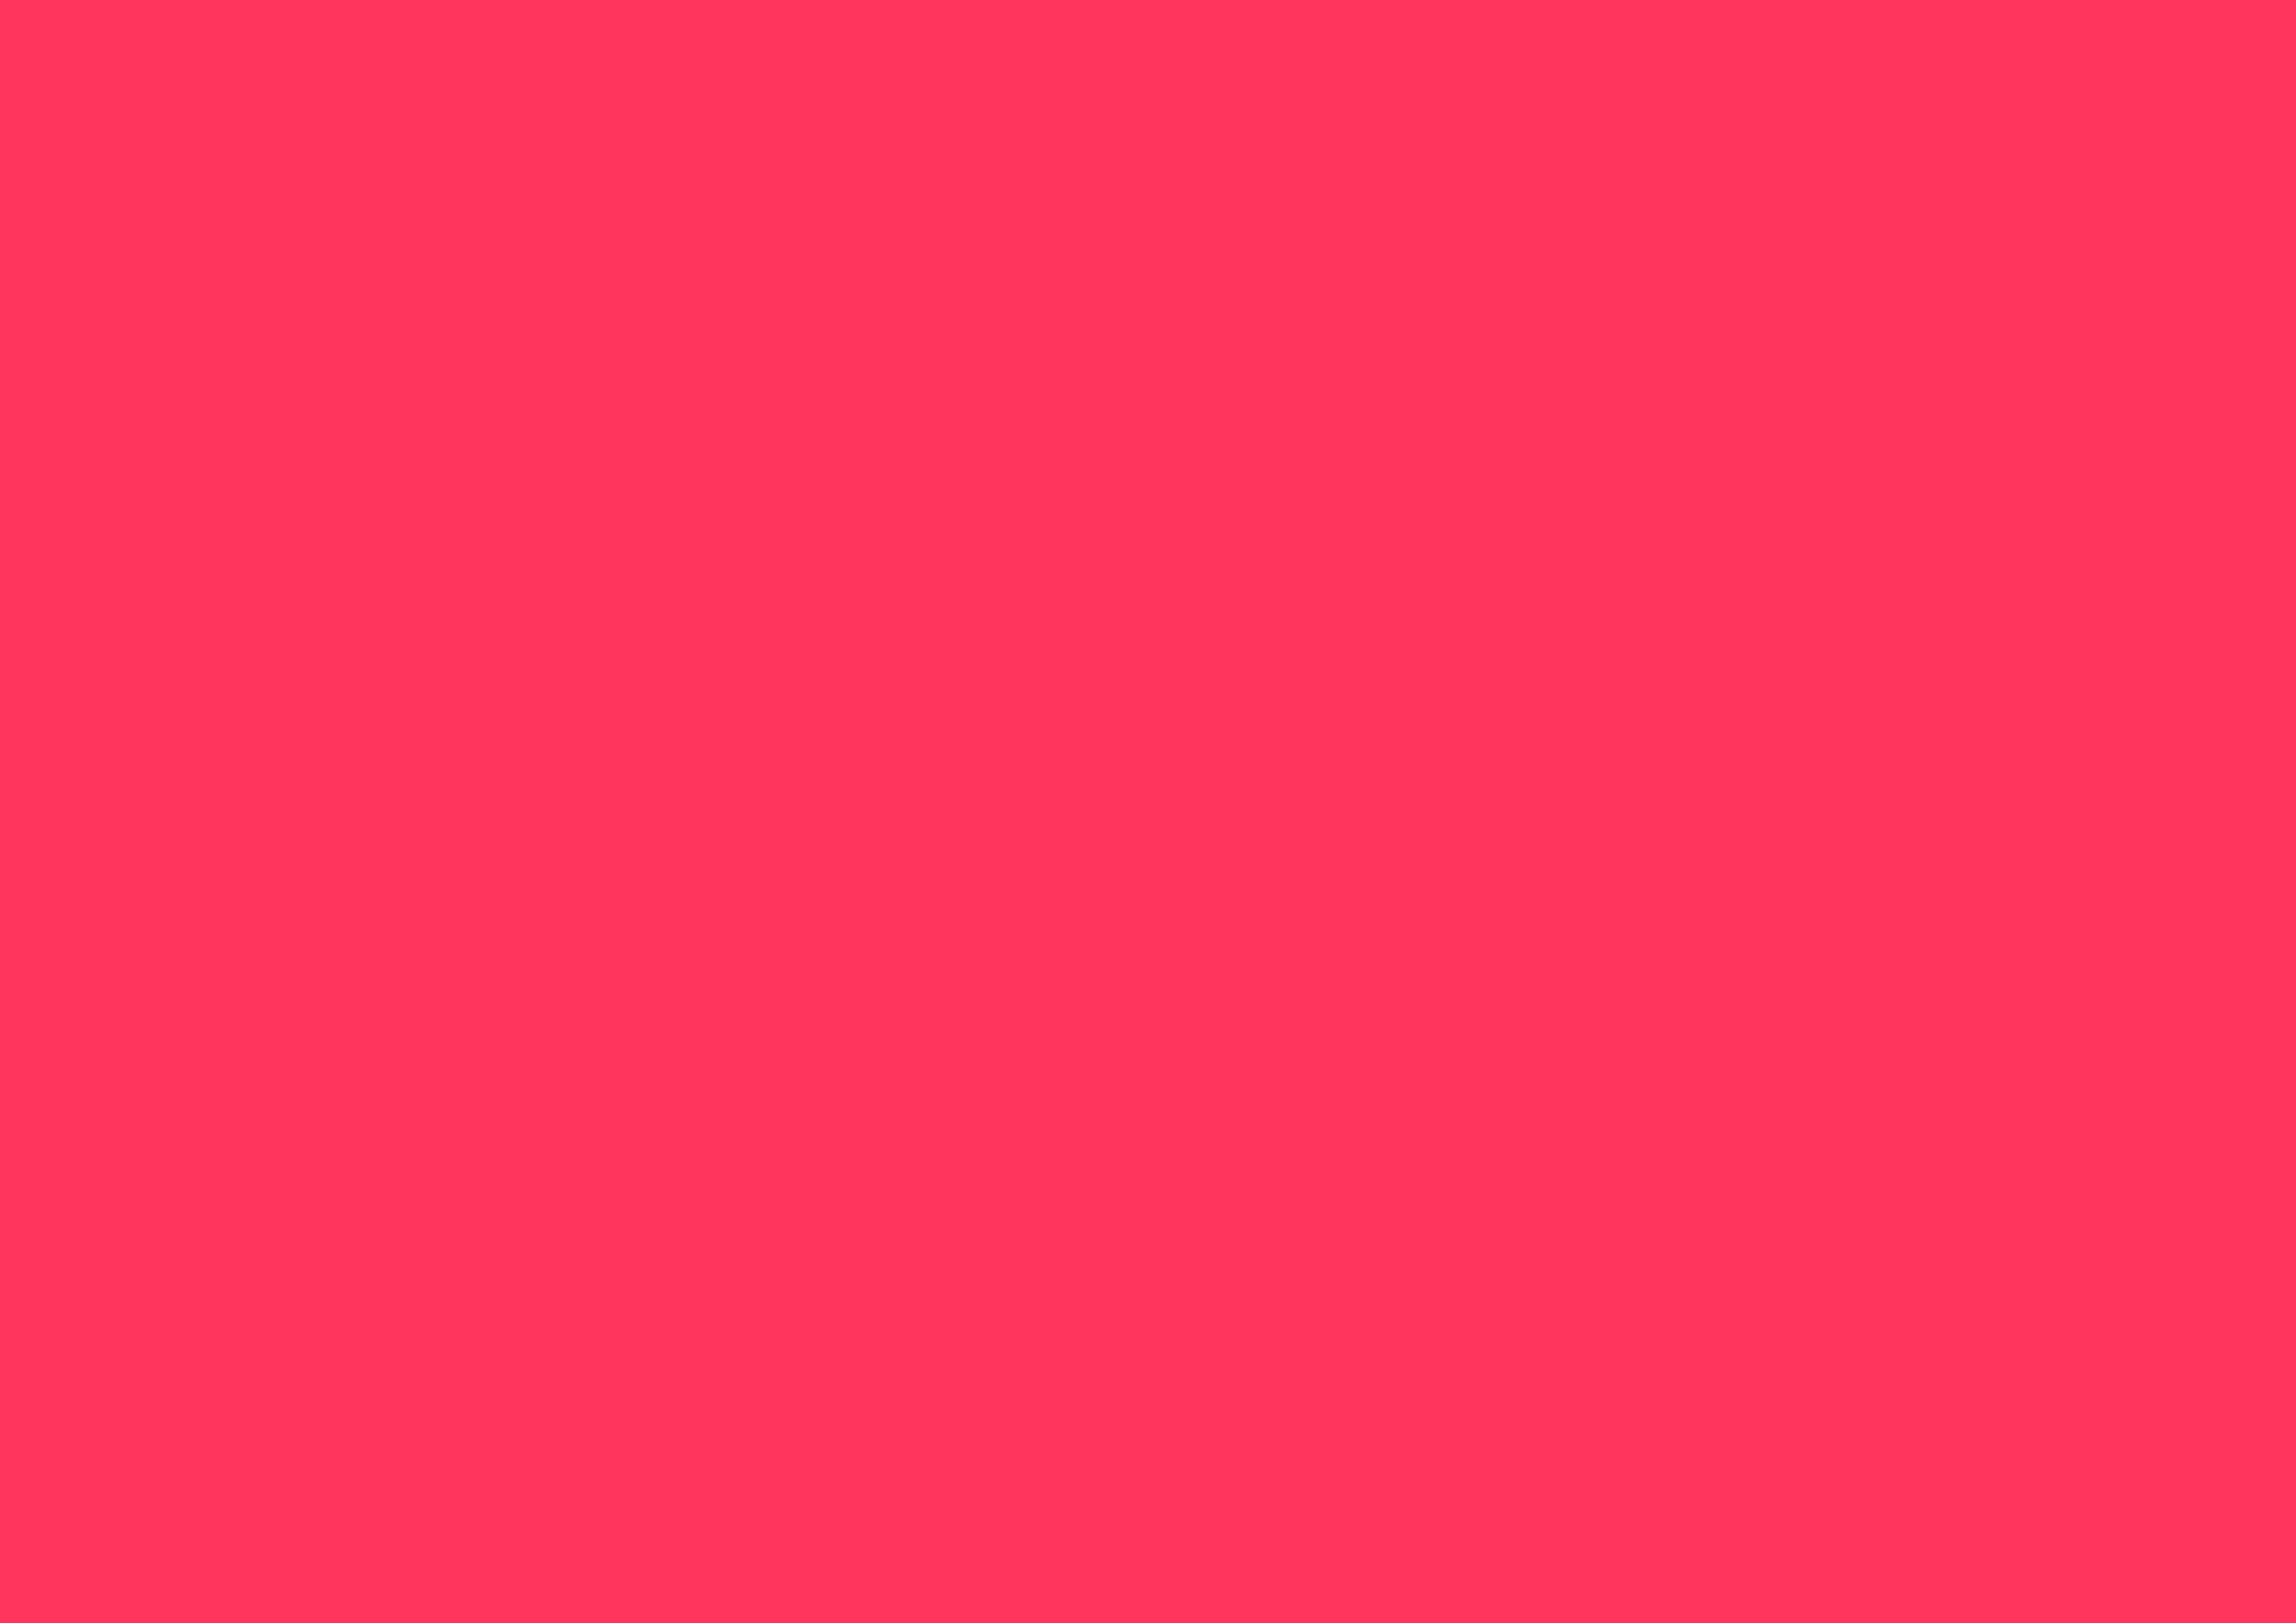 3508x2480 Radical Red Solid Color Background